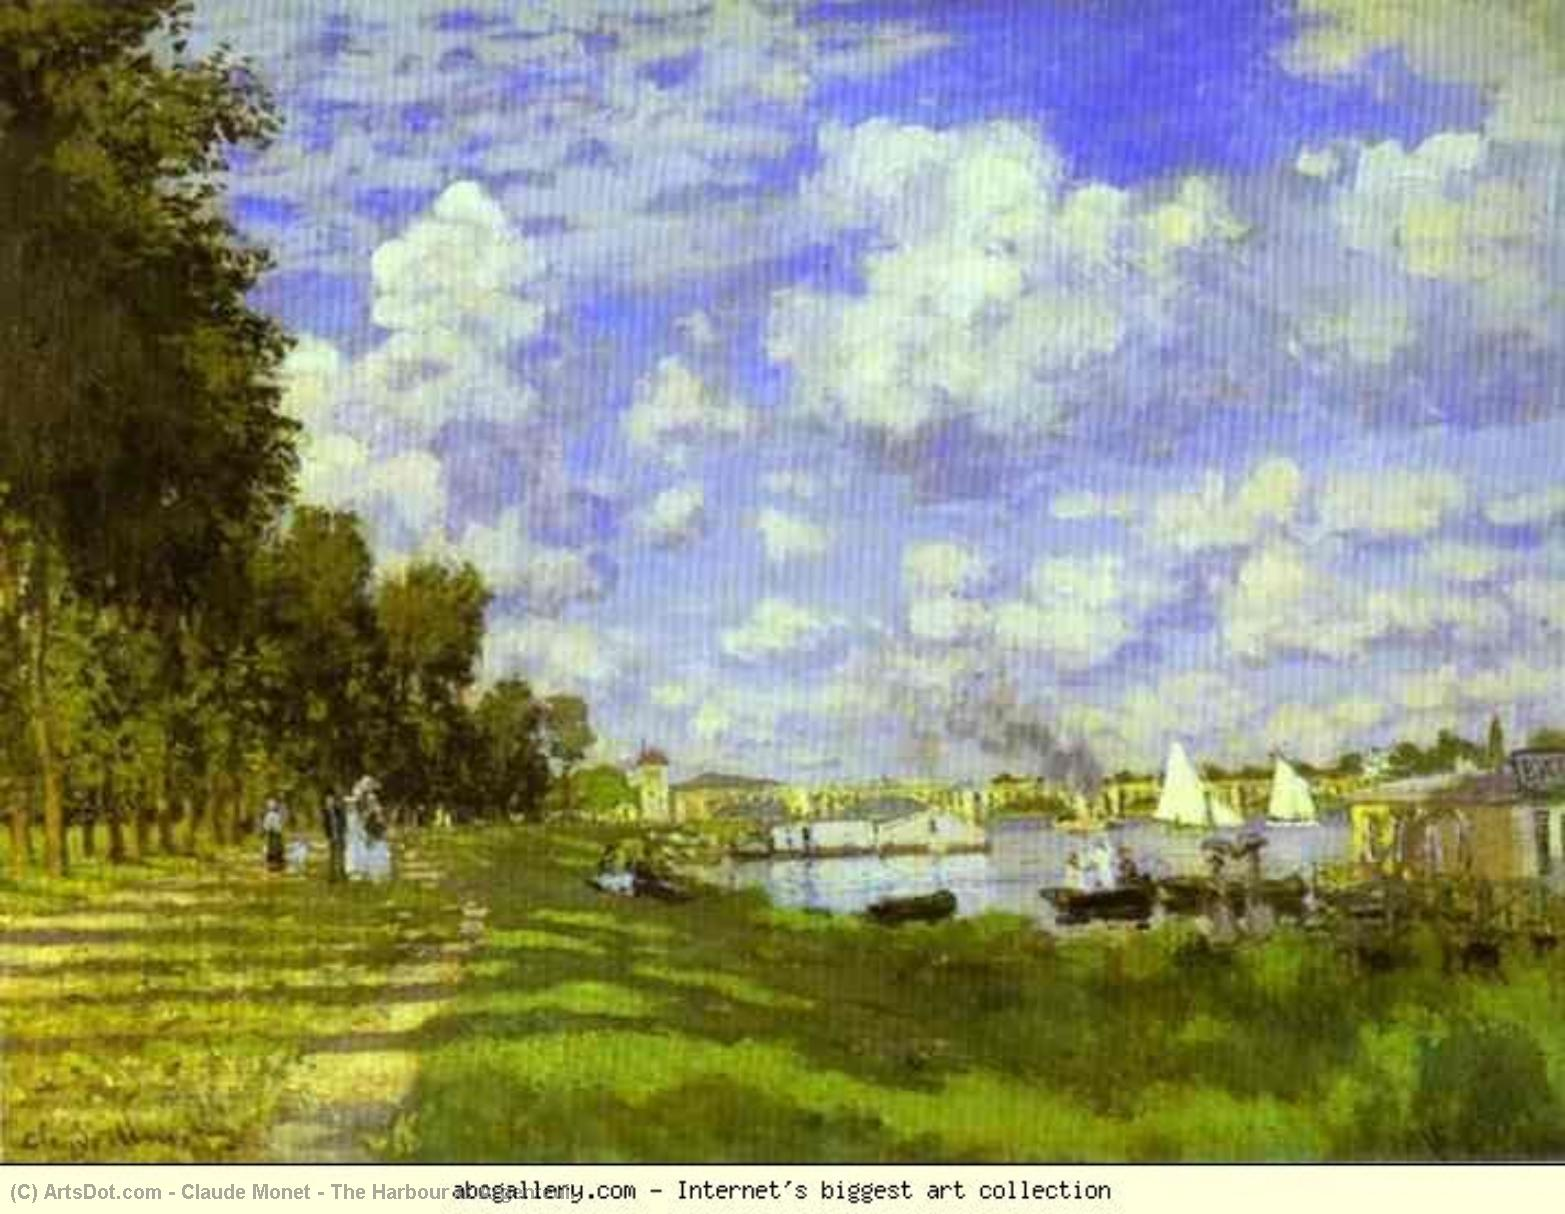 Wikioo.org - The Encyclopedia of Fine Arts - Painting, Artwork by Claude Monet - The Harbour at Argenteuil